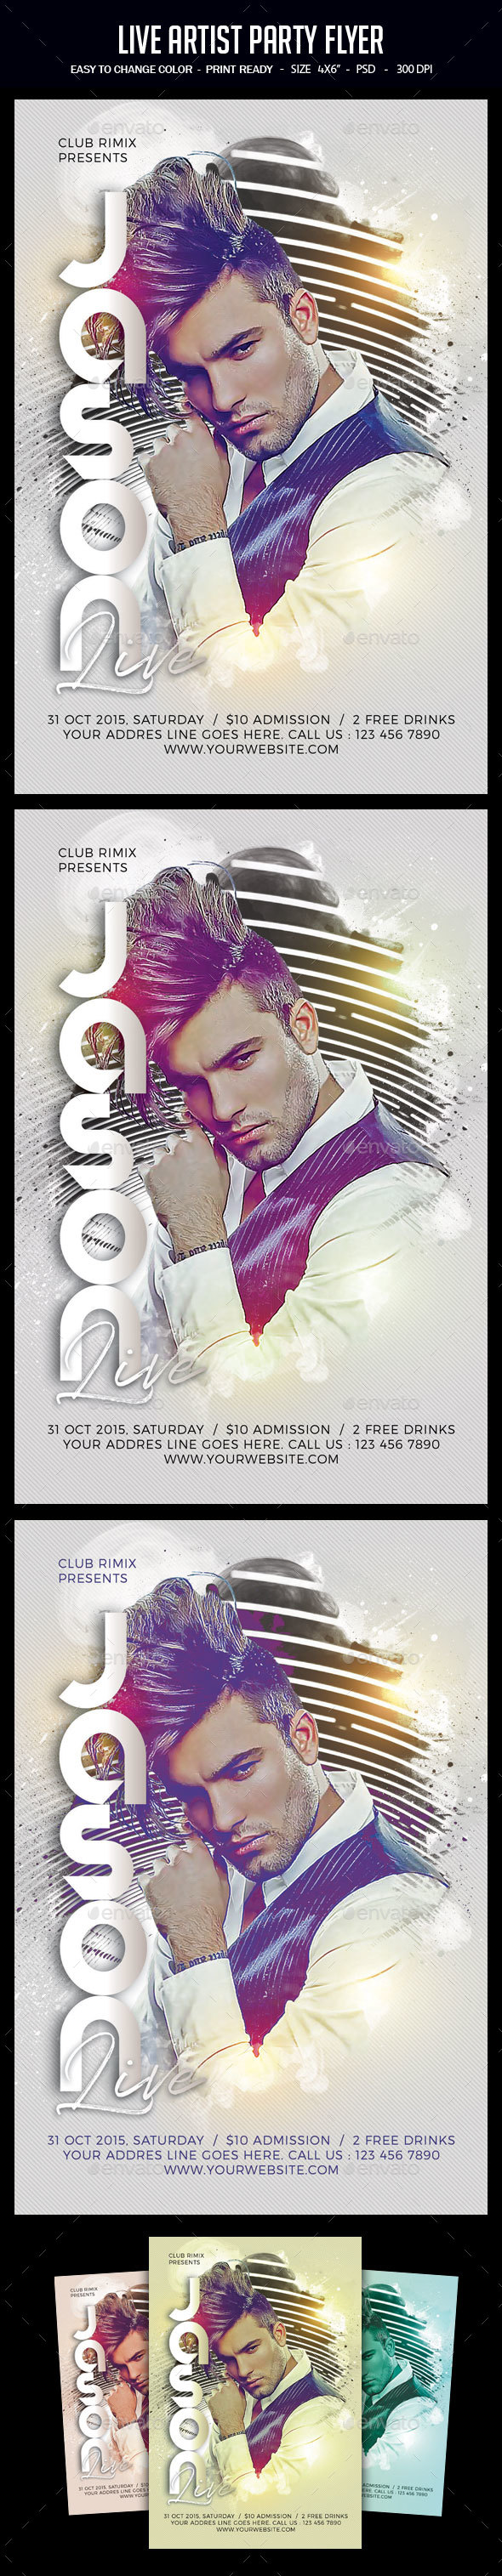 Live Artist Party Flyer - Clubs & Parties Events